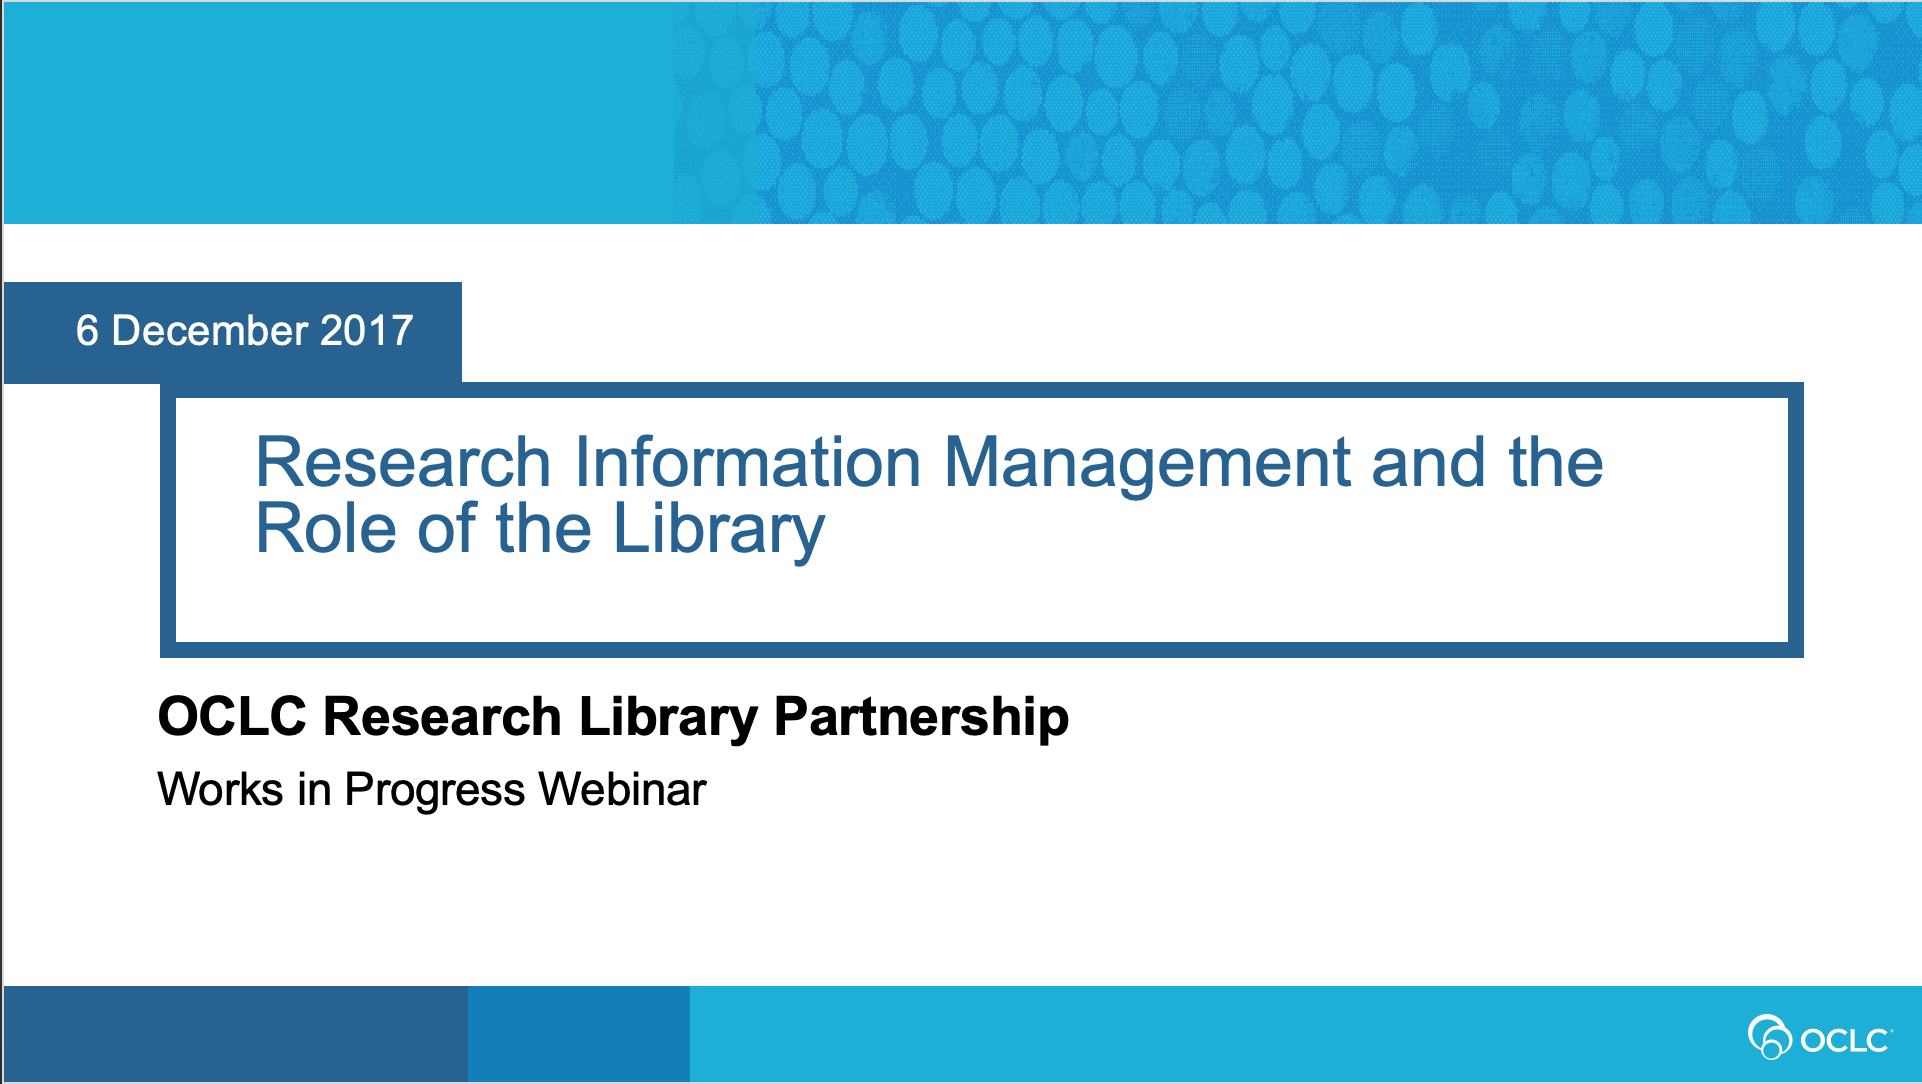 Research Information Management and the Role of the Library